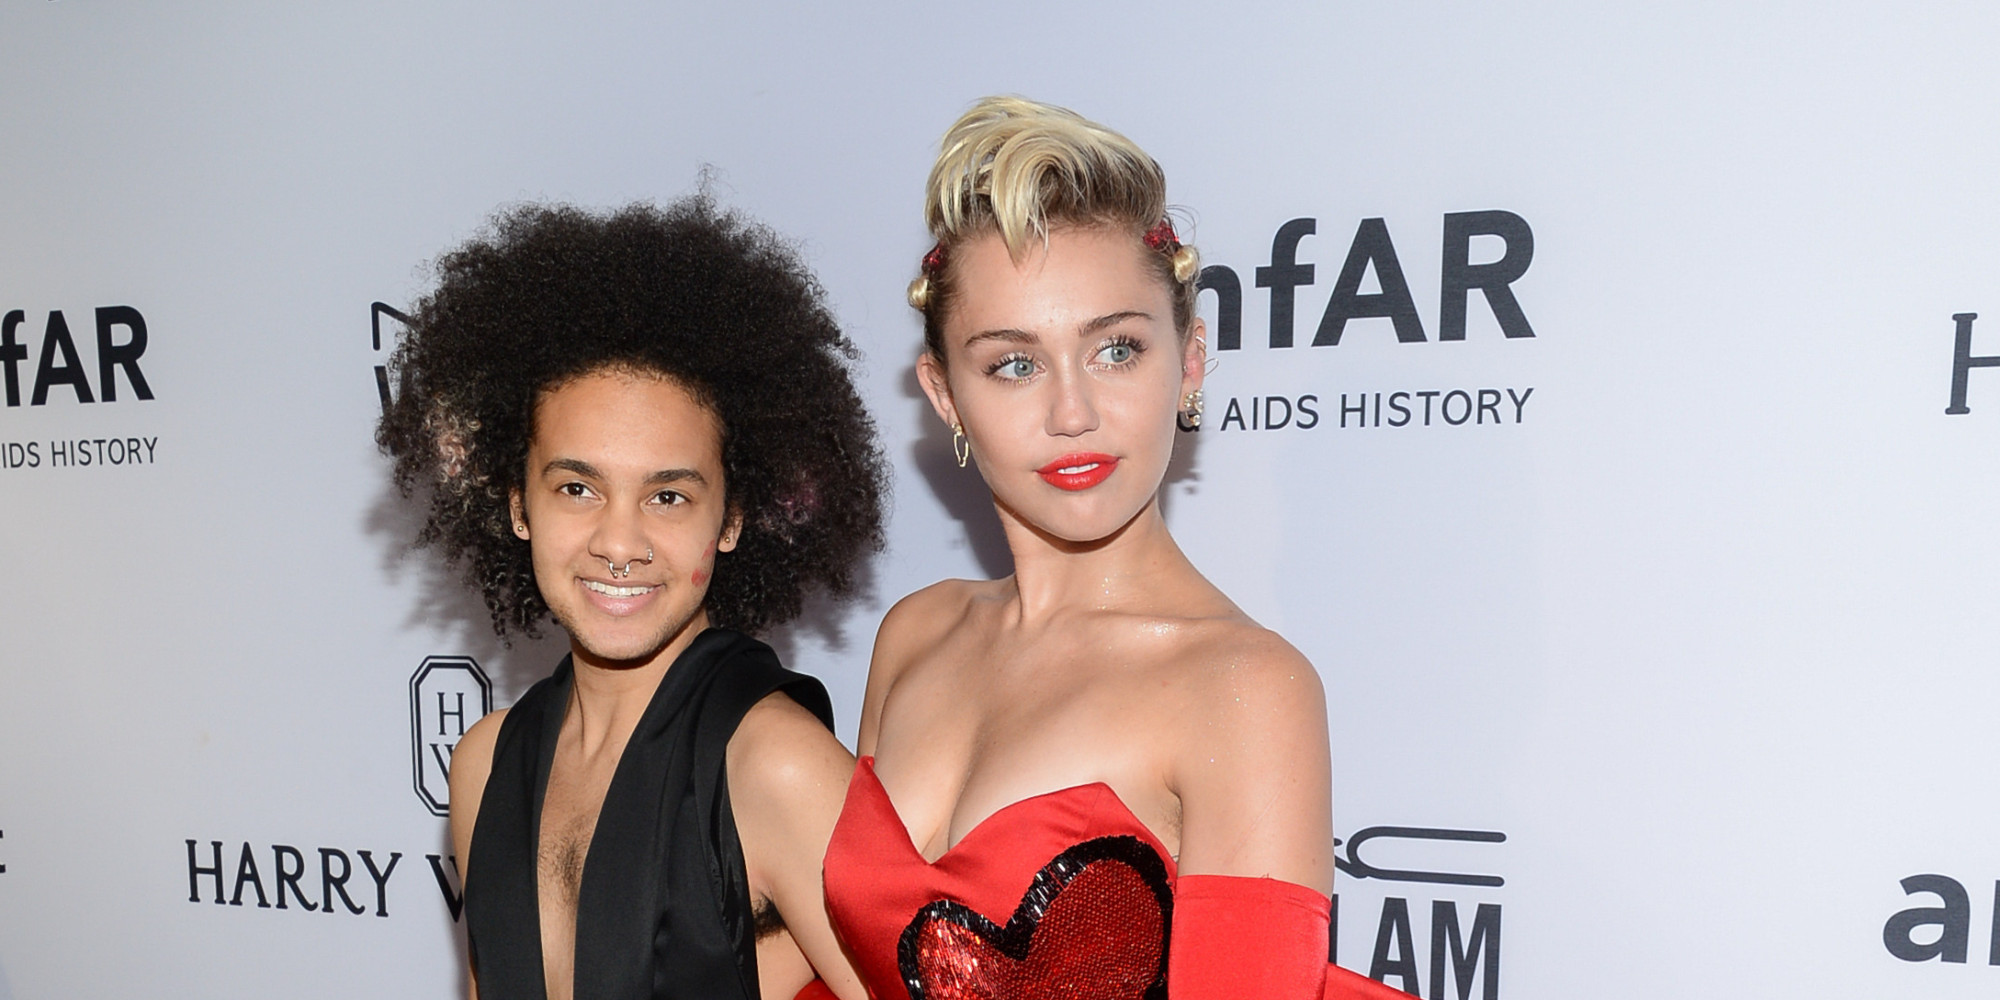 thesis statement about miley cyrus If you ask noah cyrus, miley cyrus hasn't changed one bit as the red carpet opened up at the 2017 billboard music awards, several cyrus family members appeared ready to enjoy a star-studded .